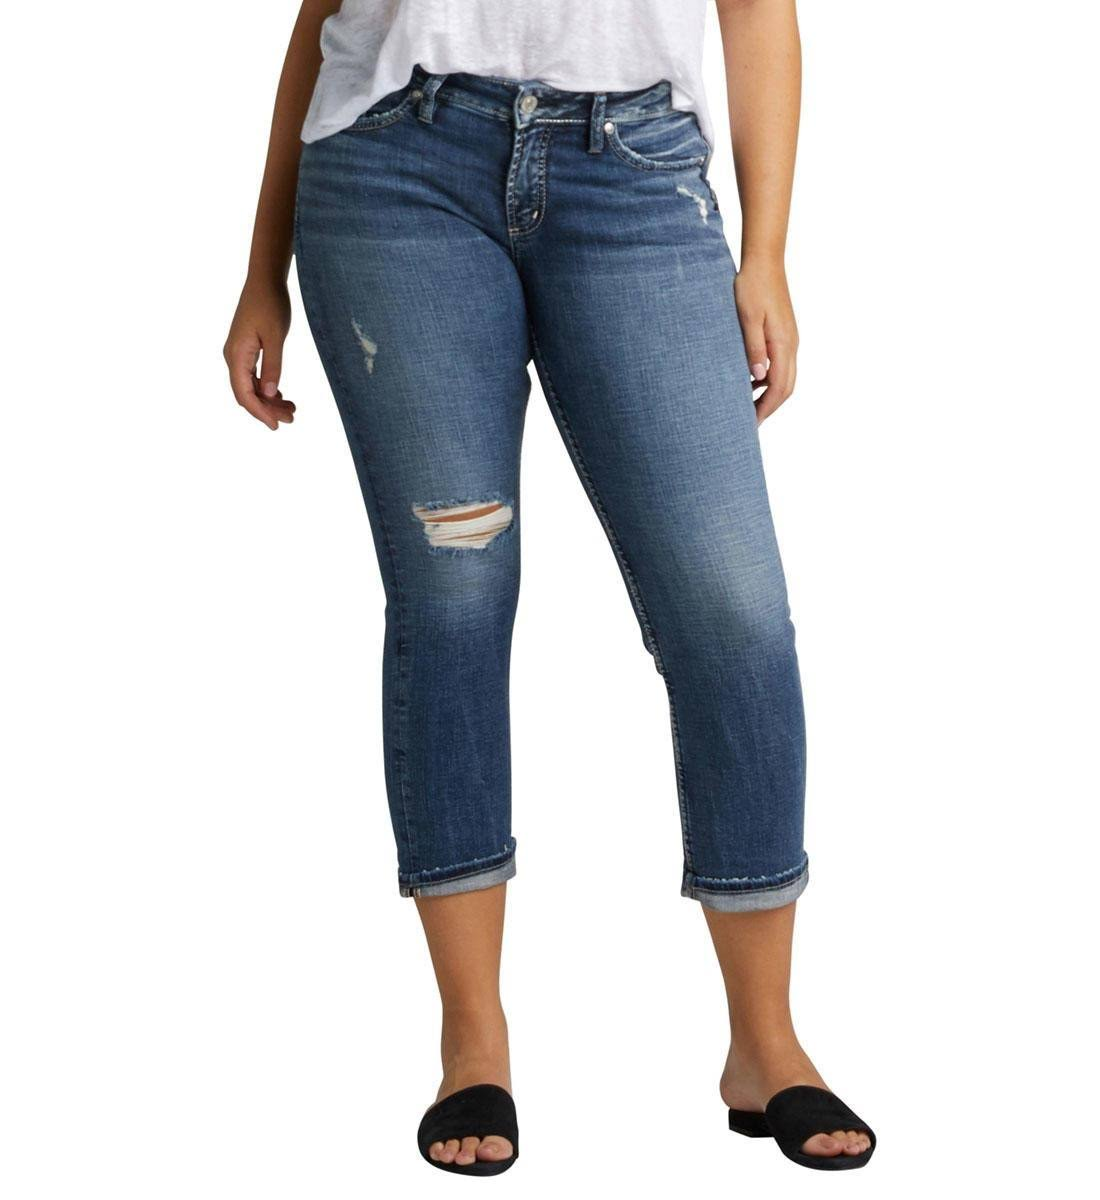 Silver Jeans Co. Elyse Destructed Capri Jeans - Indigo 26